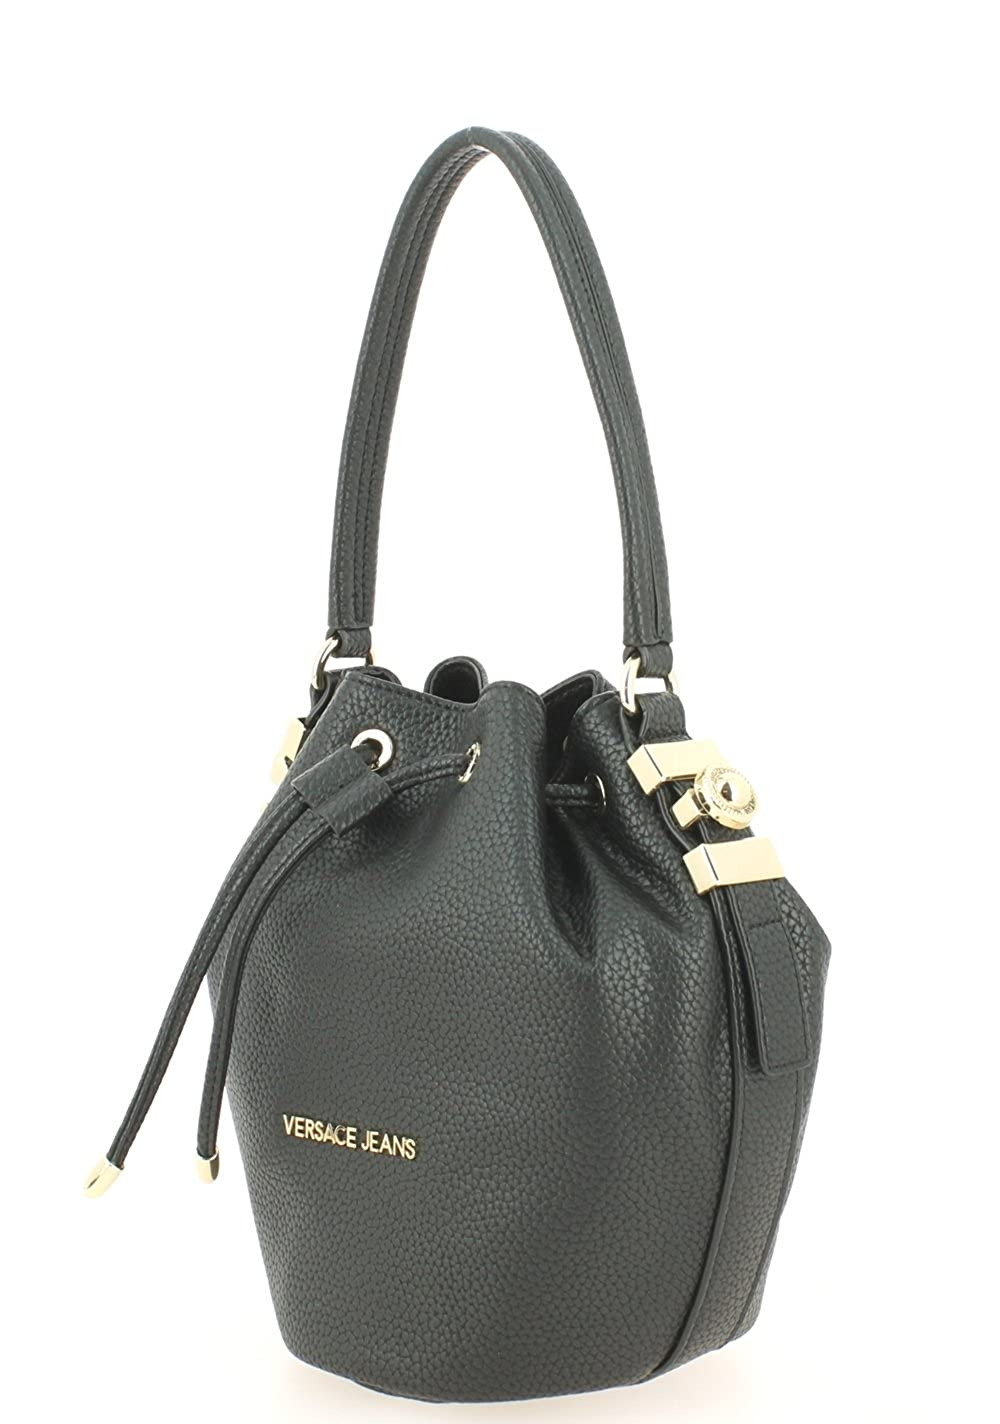 94badb171f Versace Jeans Katie Black Pebbled Bucket Bag Black Leather: Amazon.co.uk:  Shoes & Bags